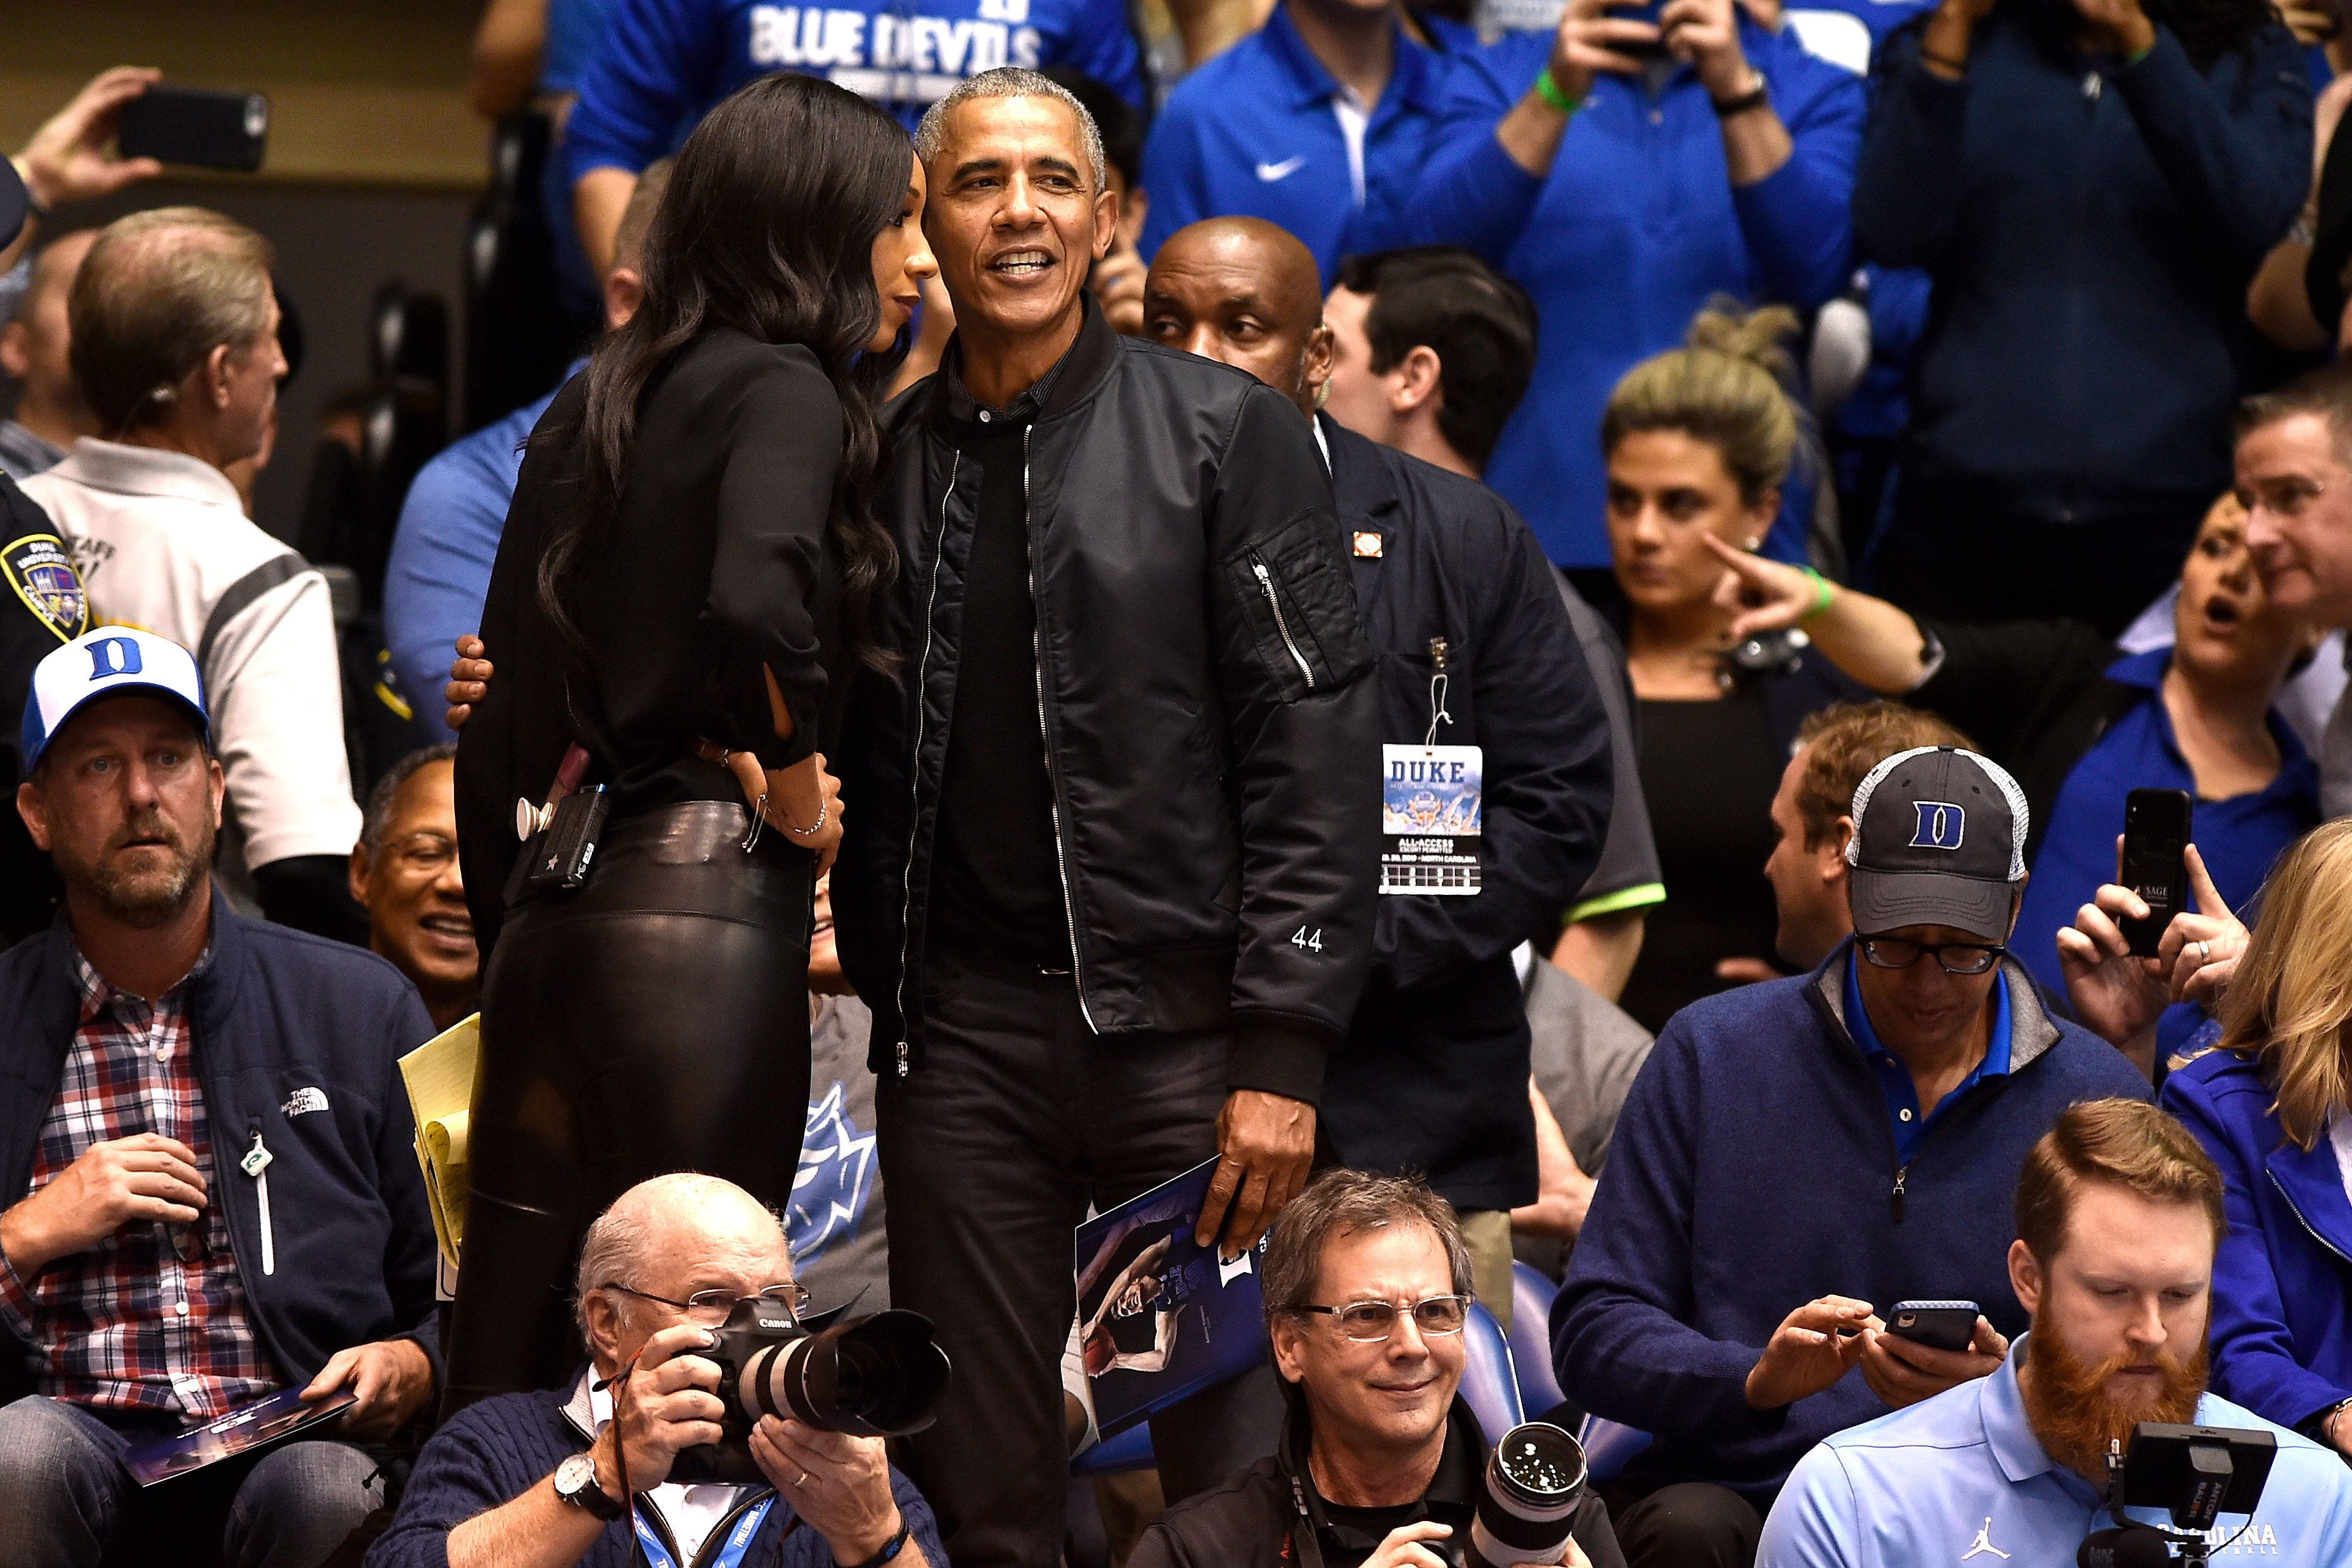 People Are Extremely Into Barack Obama's Bomber Jacket With '44' On The Sleeve